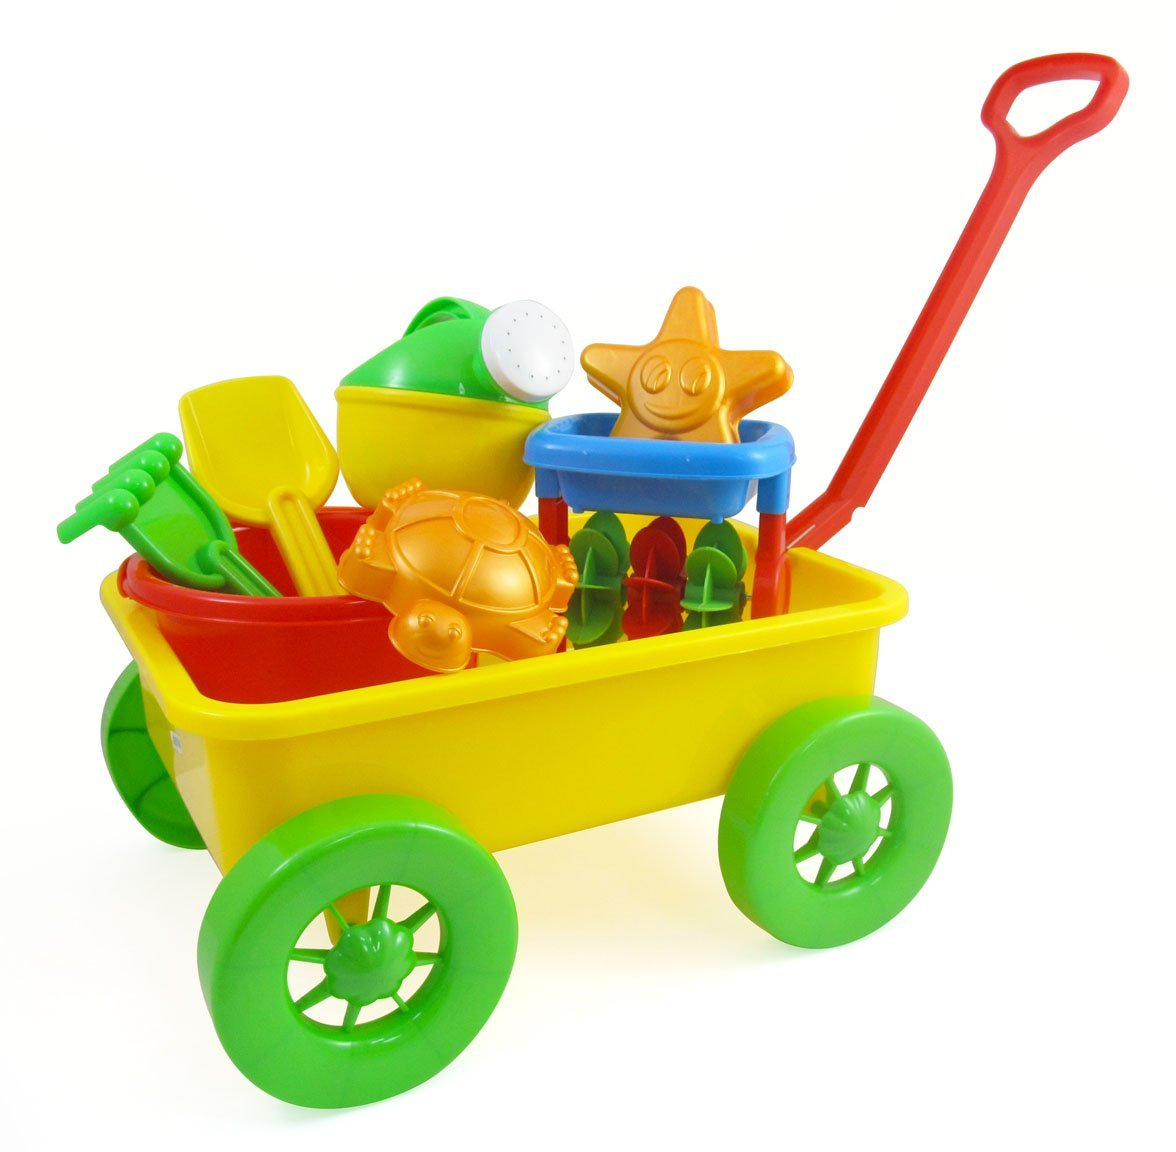 Toy Wagons For Toddlers The Wagon